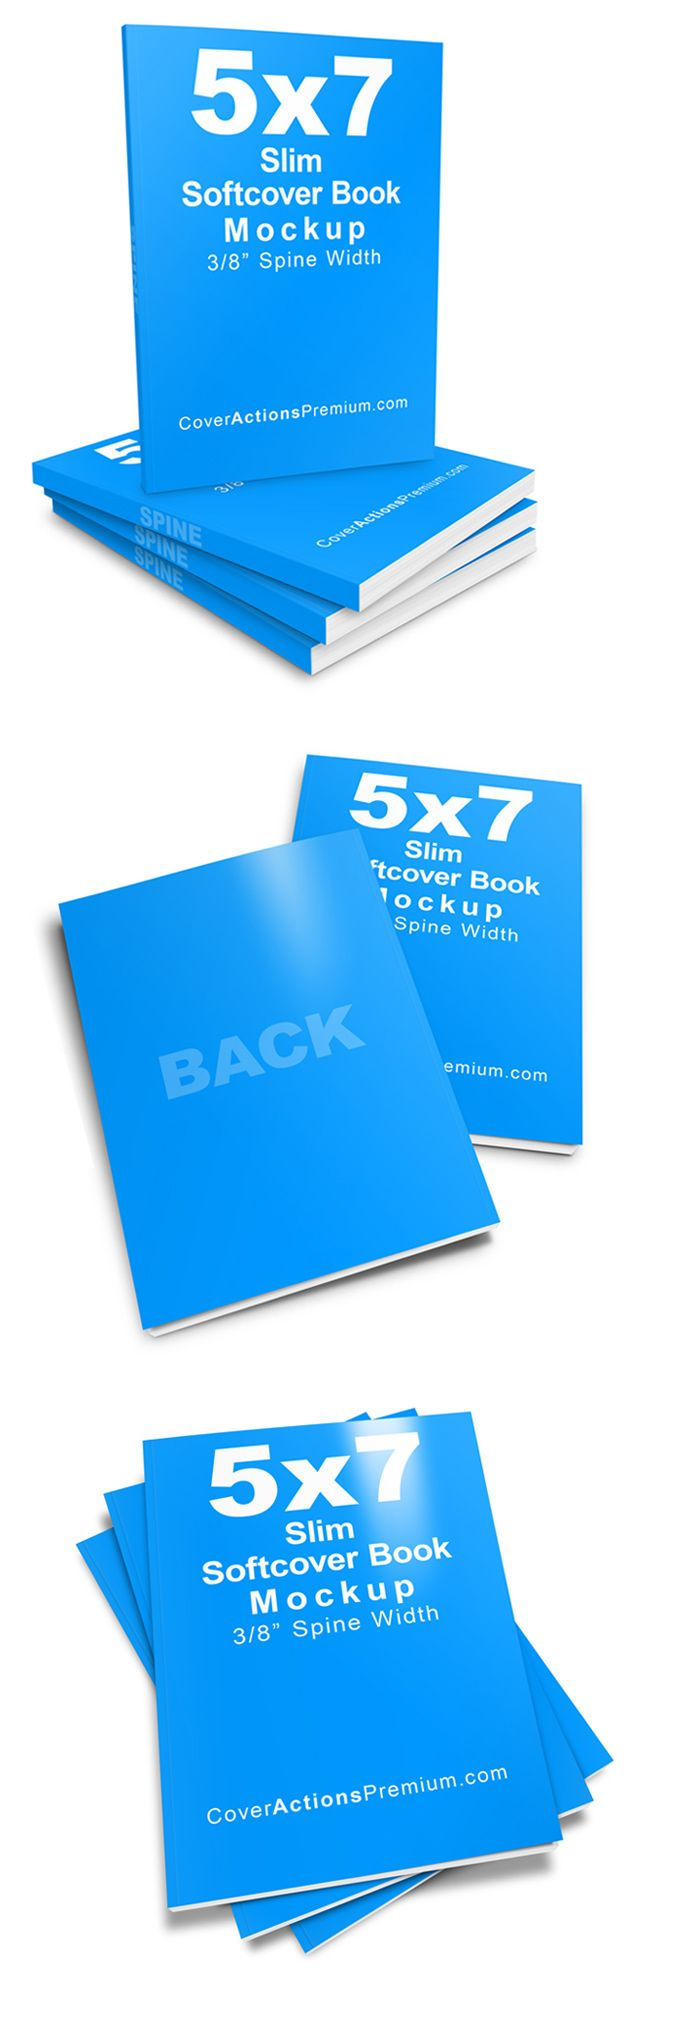 Download Slim 5x7 Softcover Book Mockup Cover Actions Premium Mockup Psd Template Psd Templates Mockup Books PSD Mockup Templates